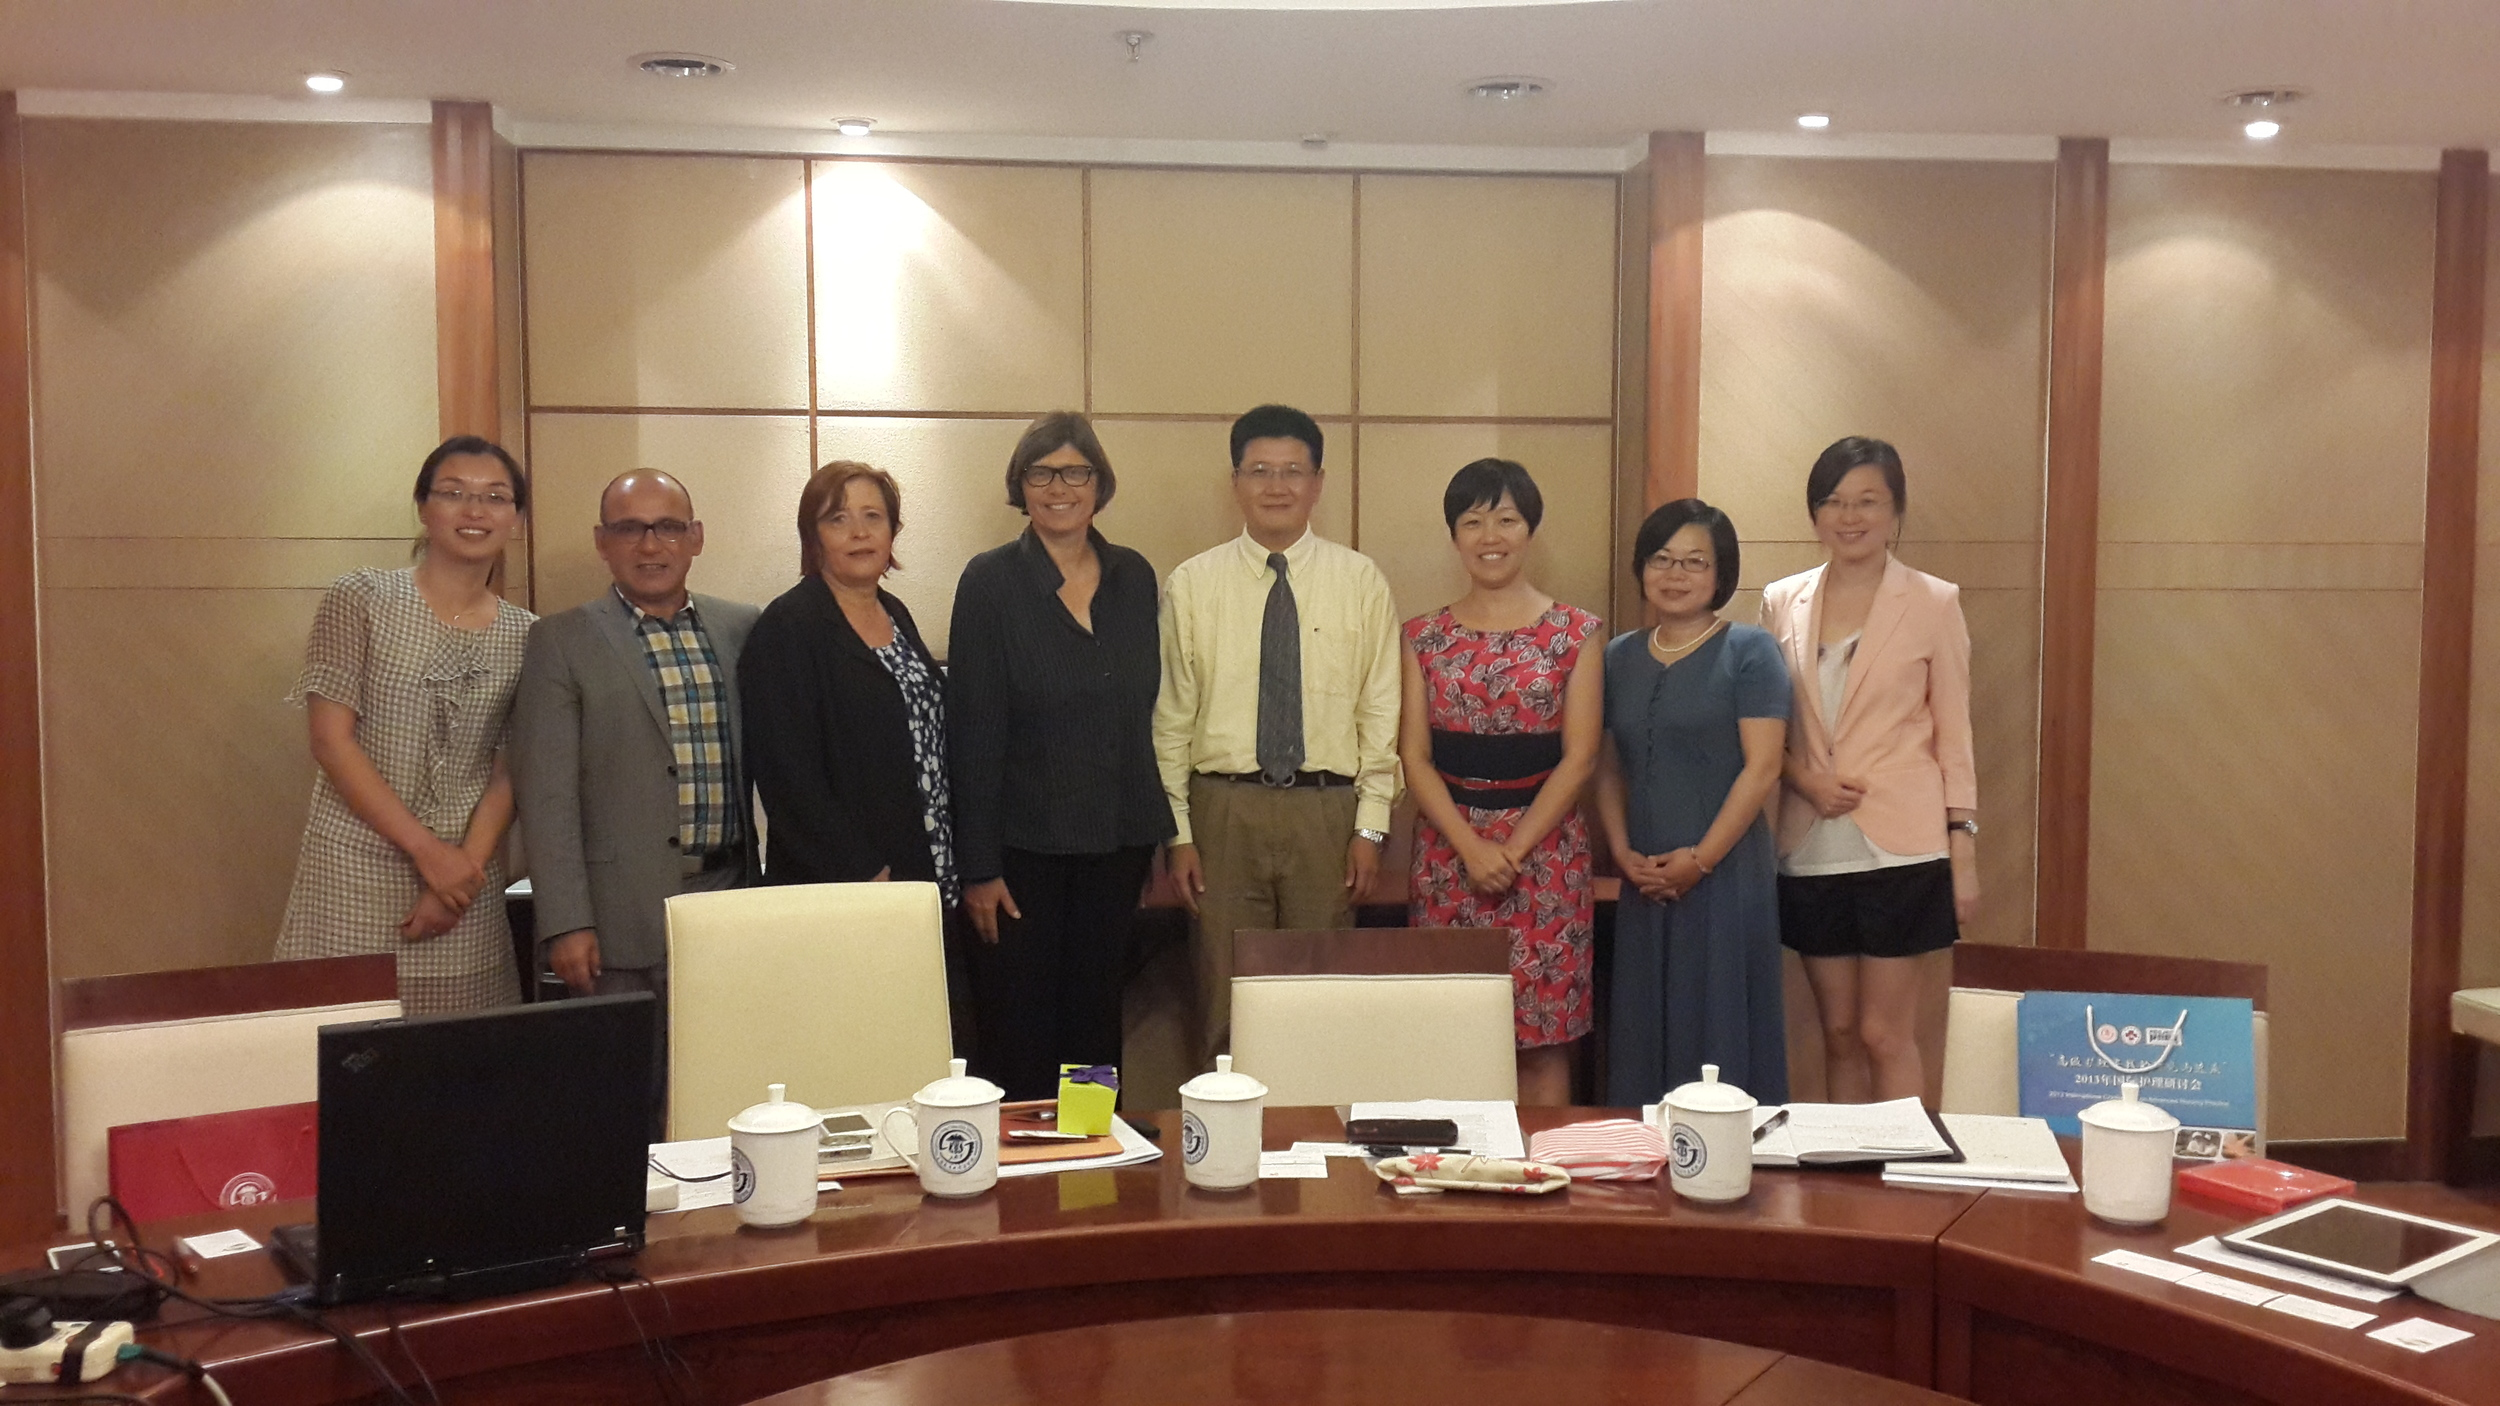 The Vaud delegation in School of Medicine, Shanghai Jiao Tong University